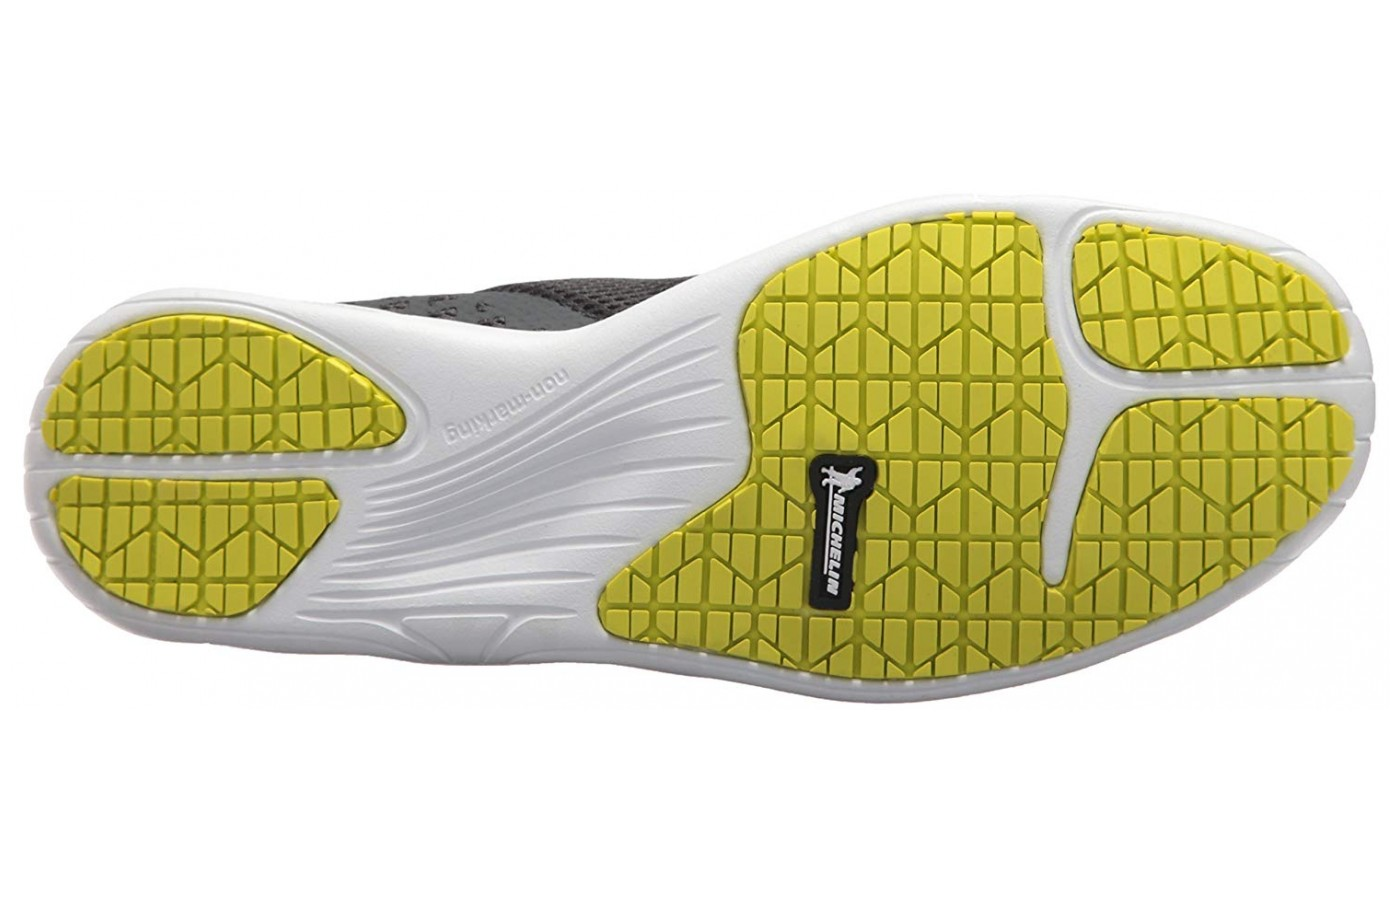 The non-marking outsole ensures sure-footedness on slippery terrain.